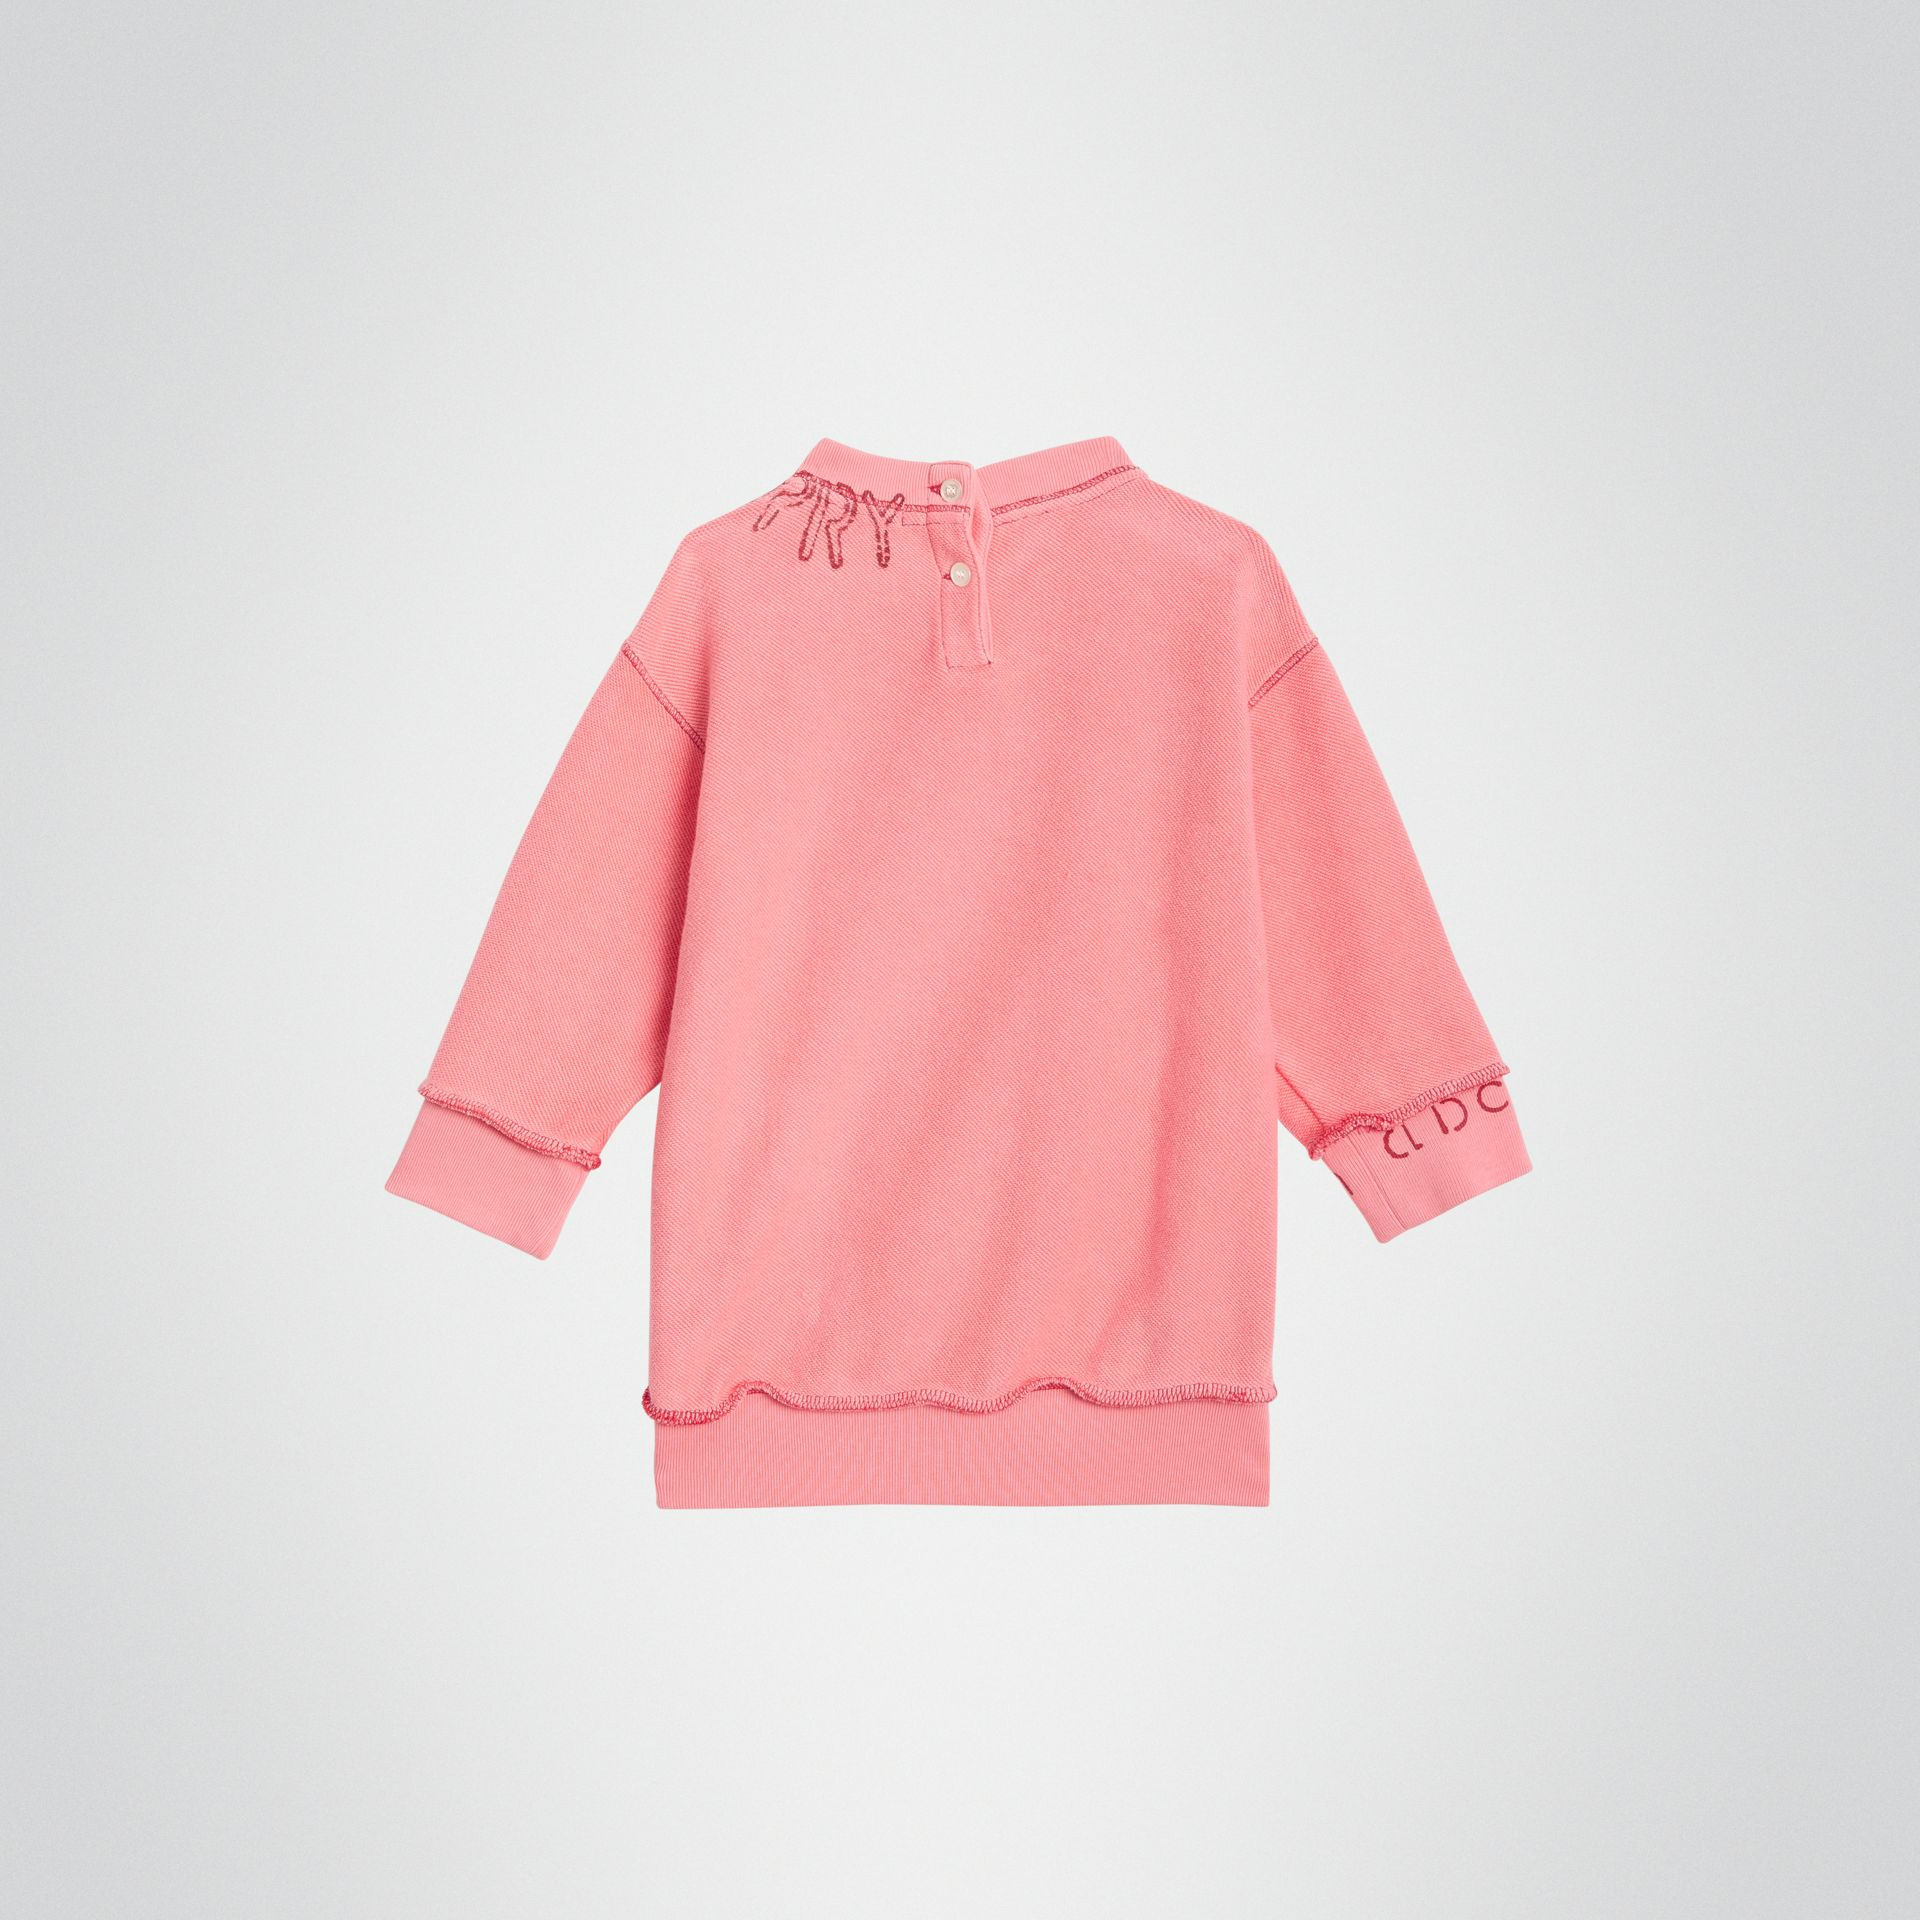 Stencil Logo Print Cotton Sweater Dress in Bright Pink - Children | Burberry - gallery image 3